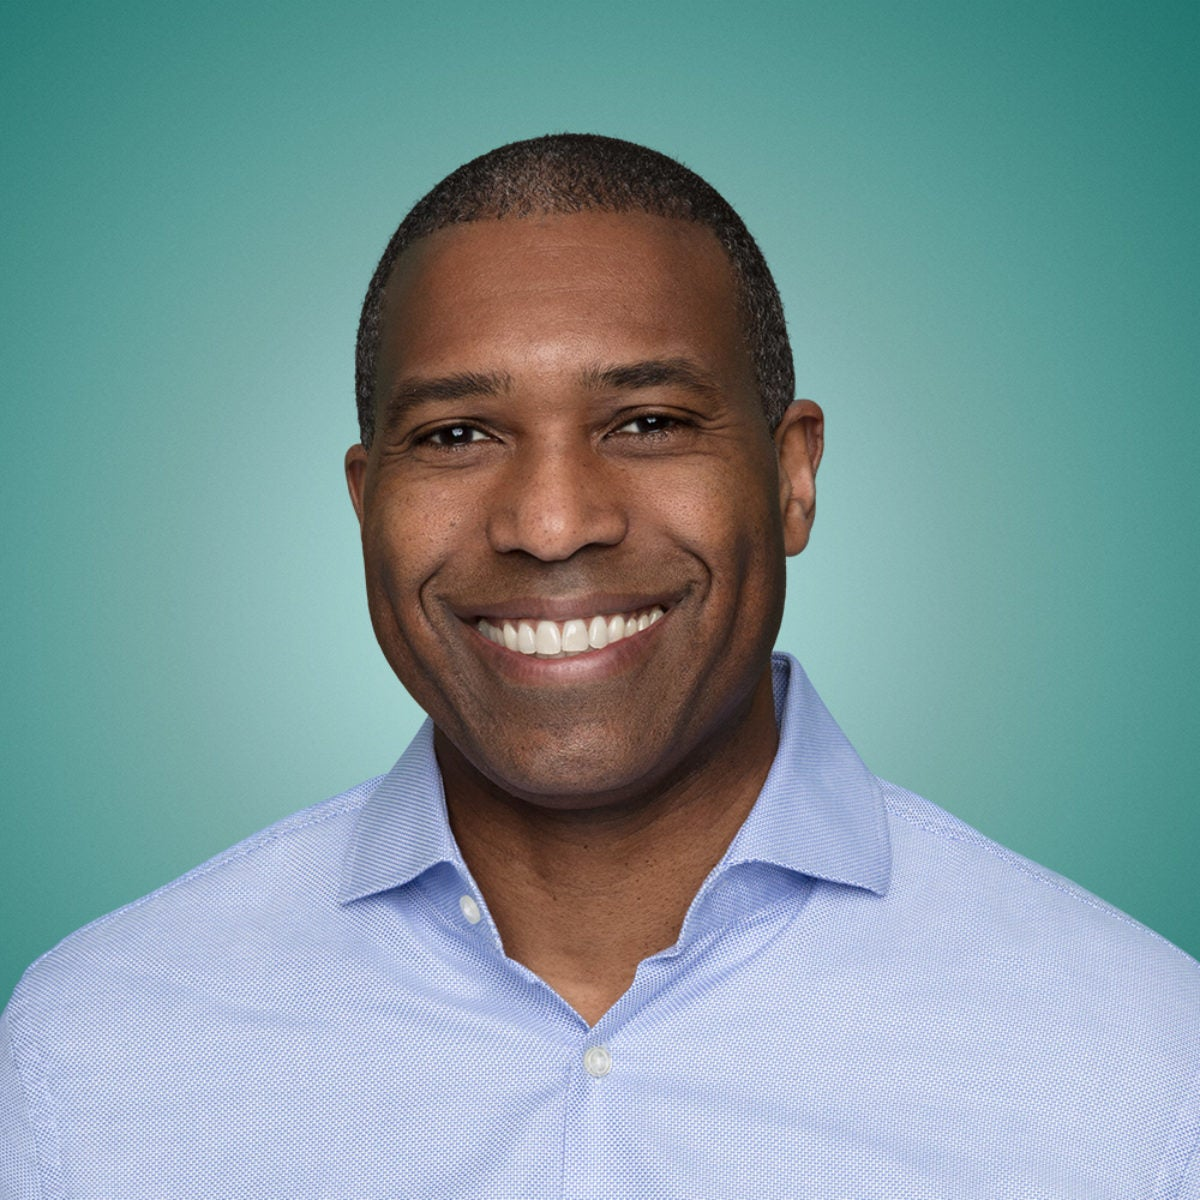 Headshot of Tony West, Senior Vice President, Chief Legal Officer, and Corporate Secretary at Uber